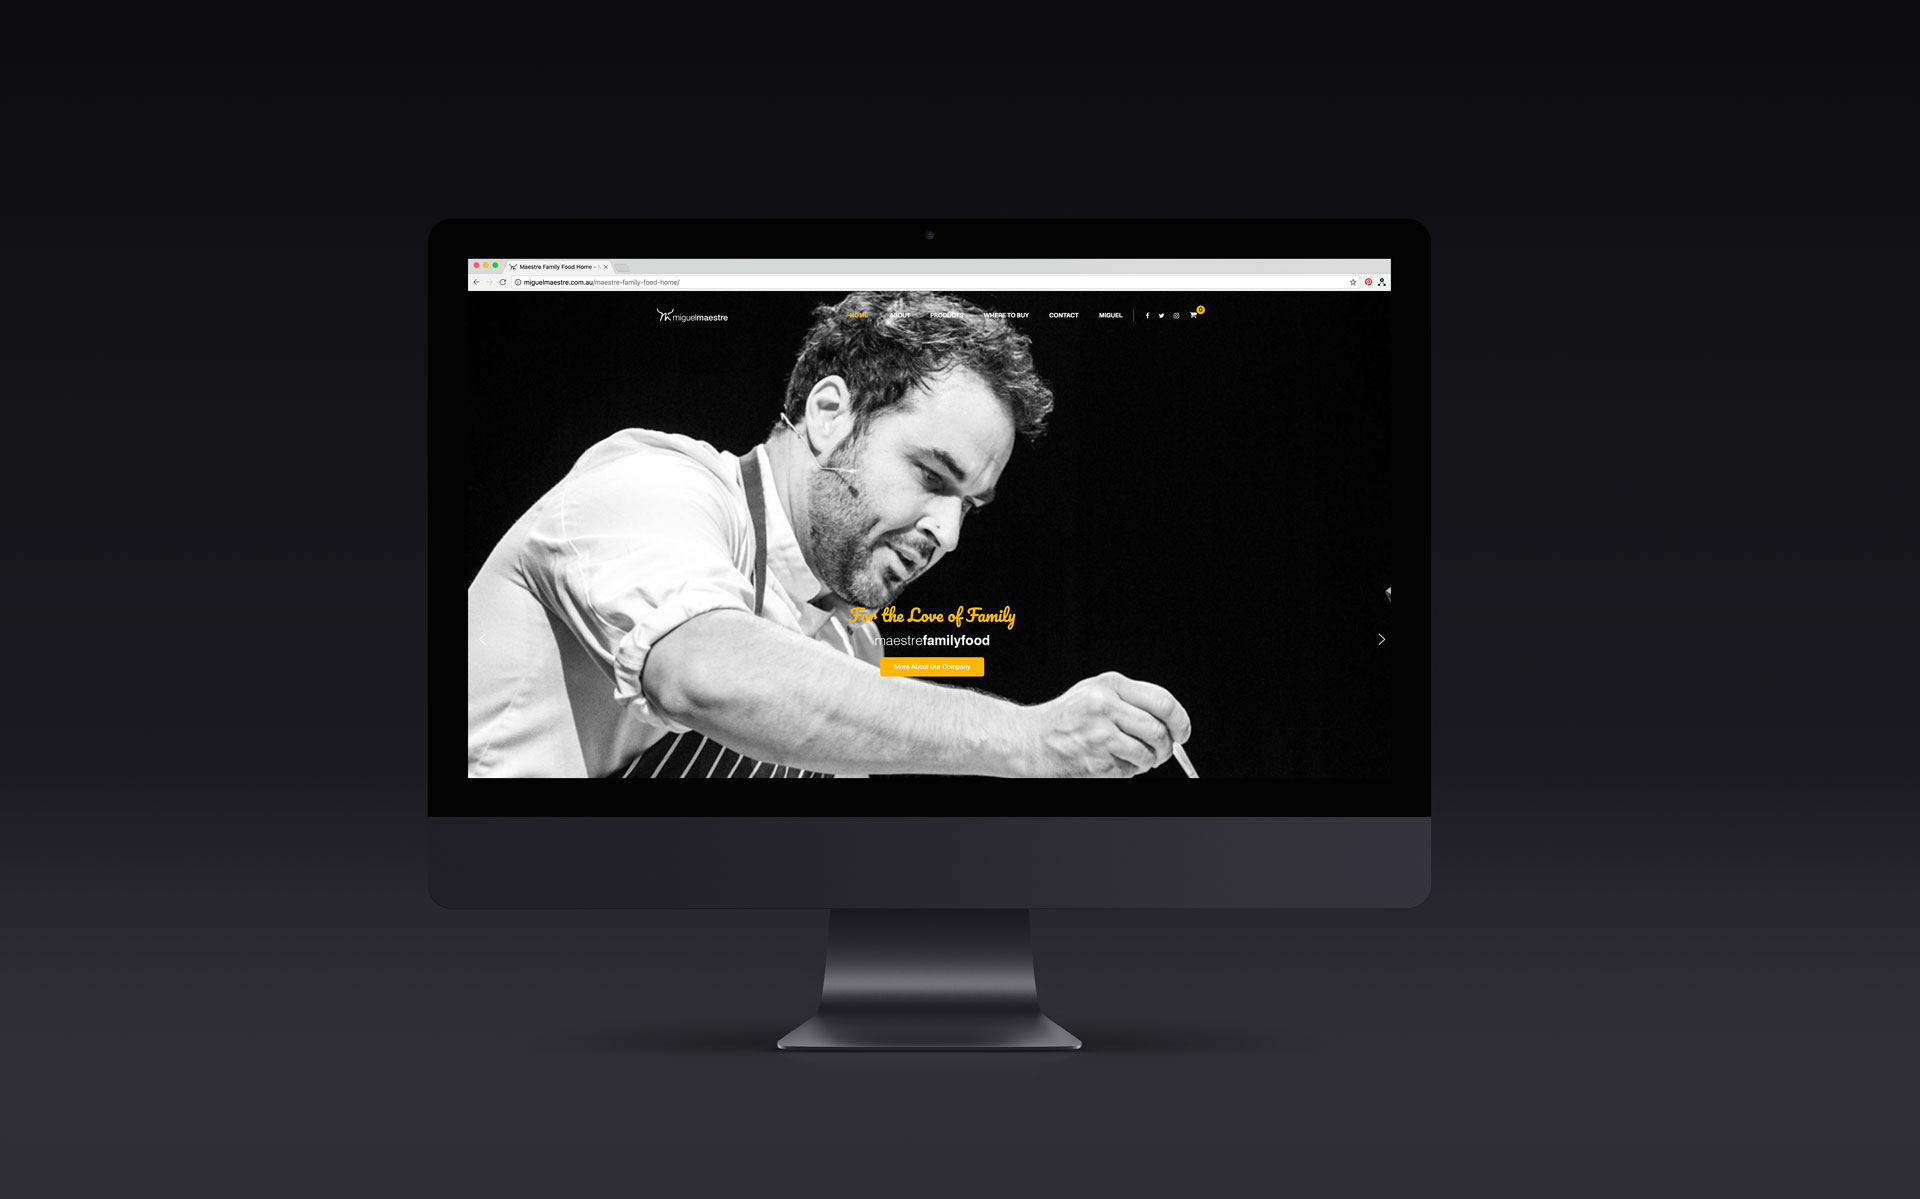 Miguel Maestre logo, branding, marketing & website design & build by Amy at Yellow Sunday